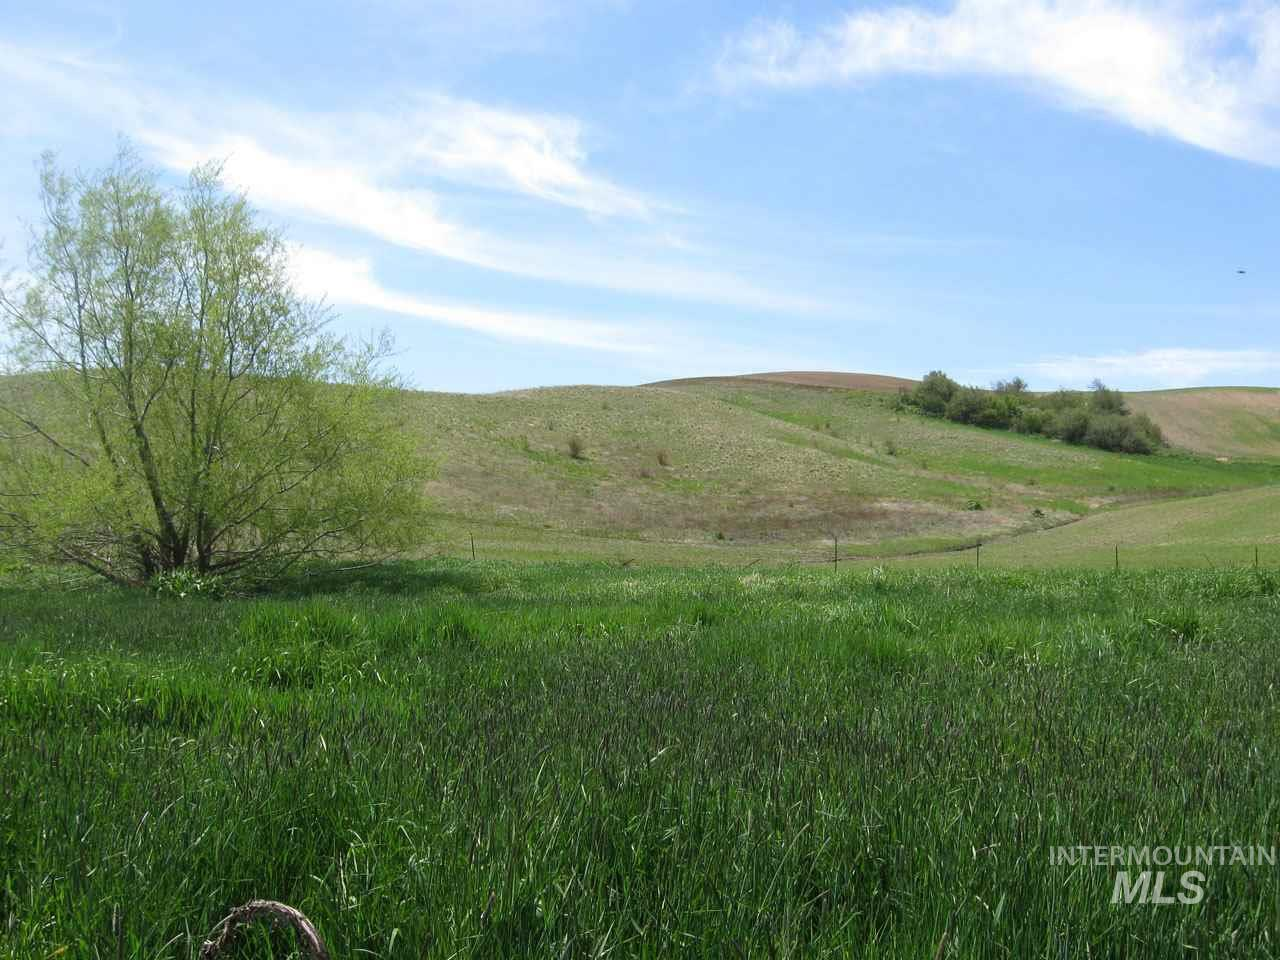 Agricultural Land for Sale at TBD Becker Road TBD Becker Road Colton, Washington 99113